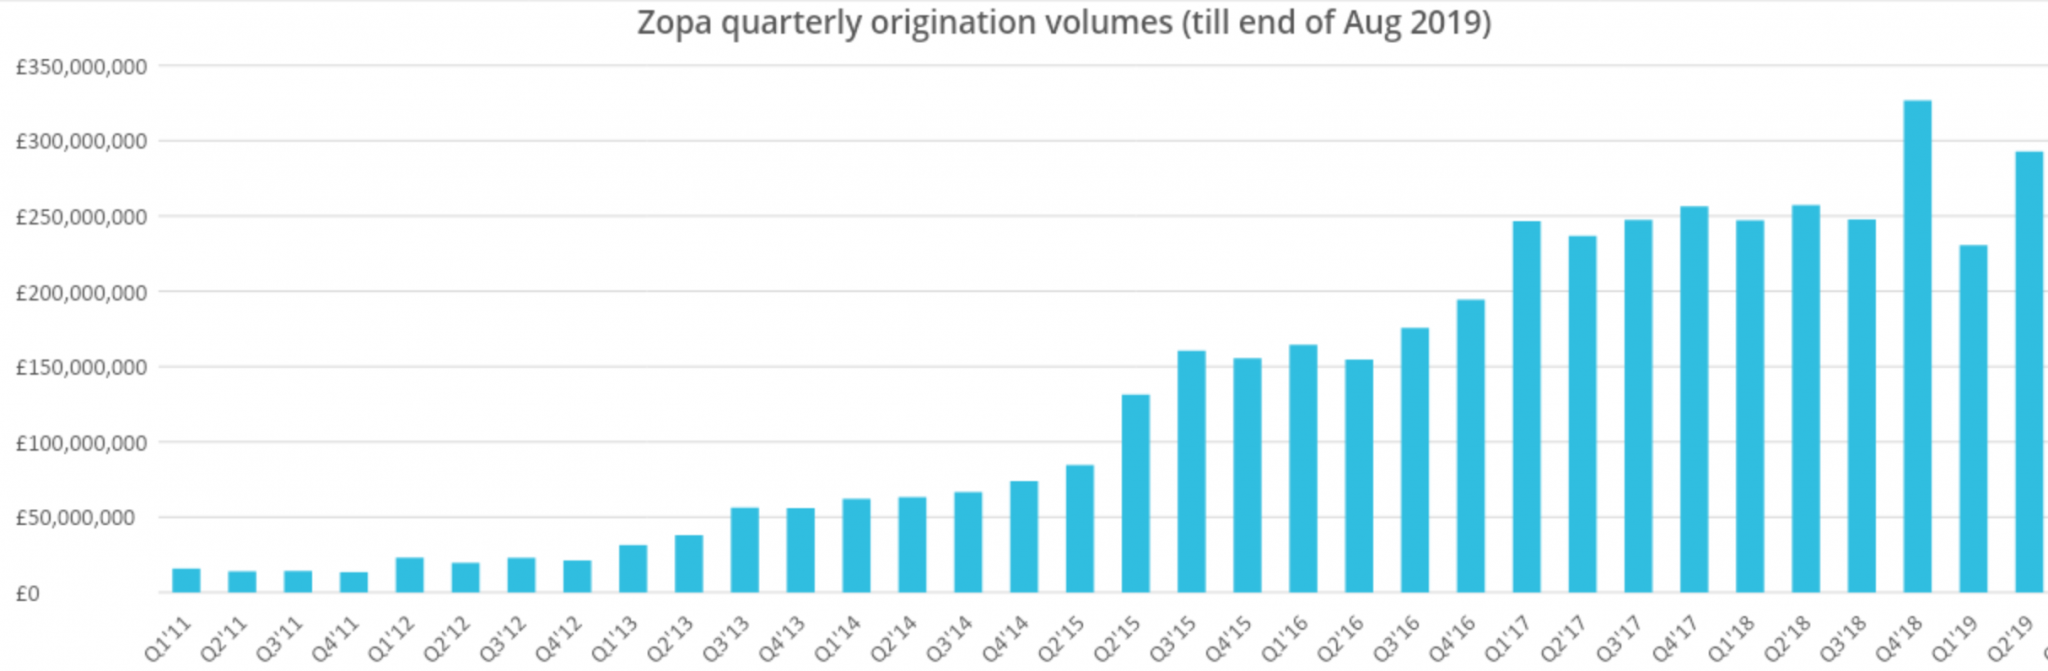 European fintech weekly: After a last-minute fundraise, what lies ahead for Zopa and its lending peers | Sifted